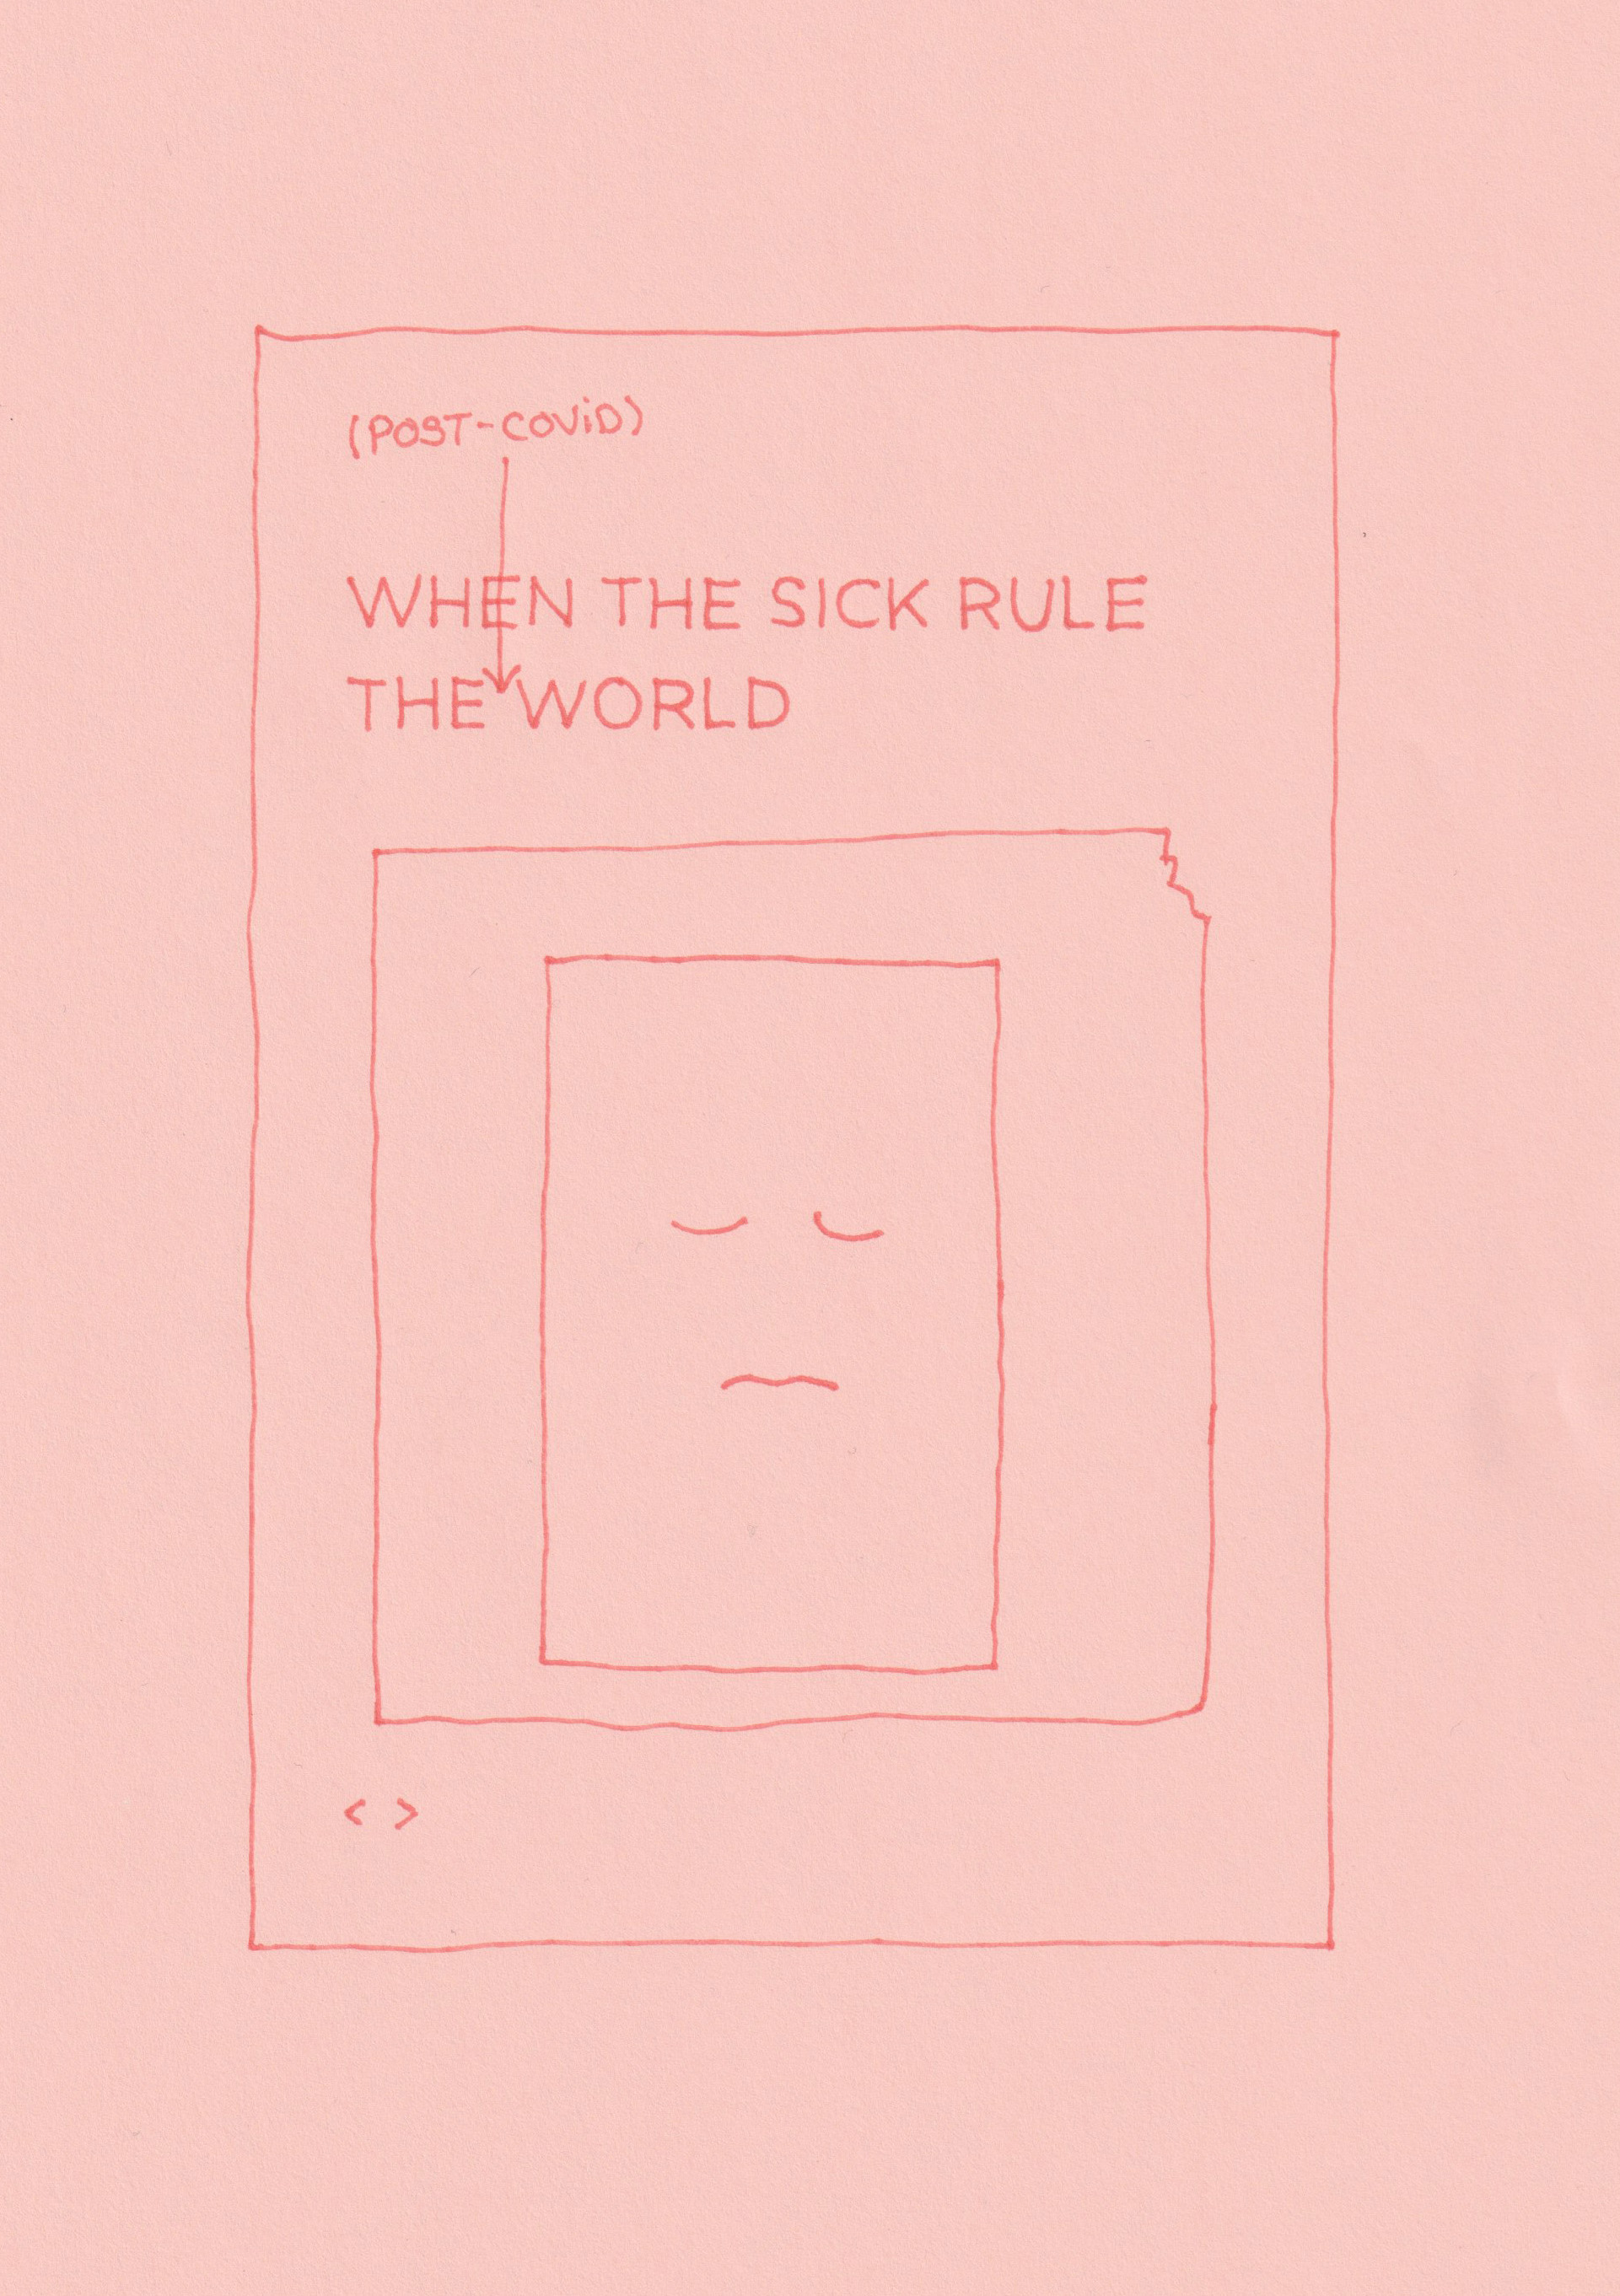 a pen drawing on peach paper that reads 'when the sick rule the world' with an arrow pointing down between 'the' and 'world' pointing to the words 'post-covid' in brackets. Below are a series of rectangle with a central frownign face made in 3 lines. The drawing appears as copy of a book cover